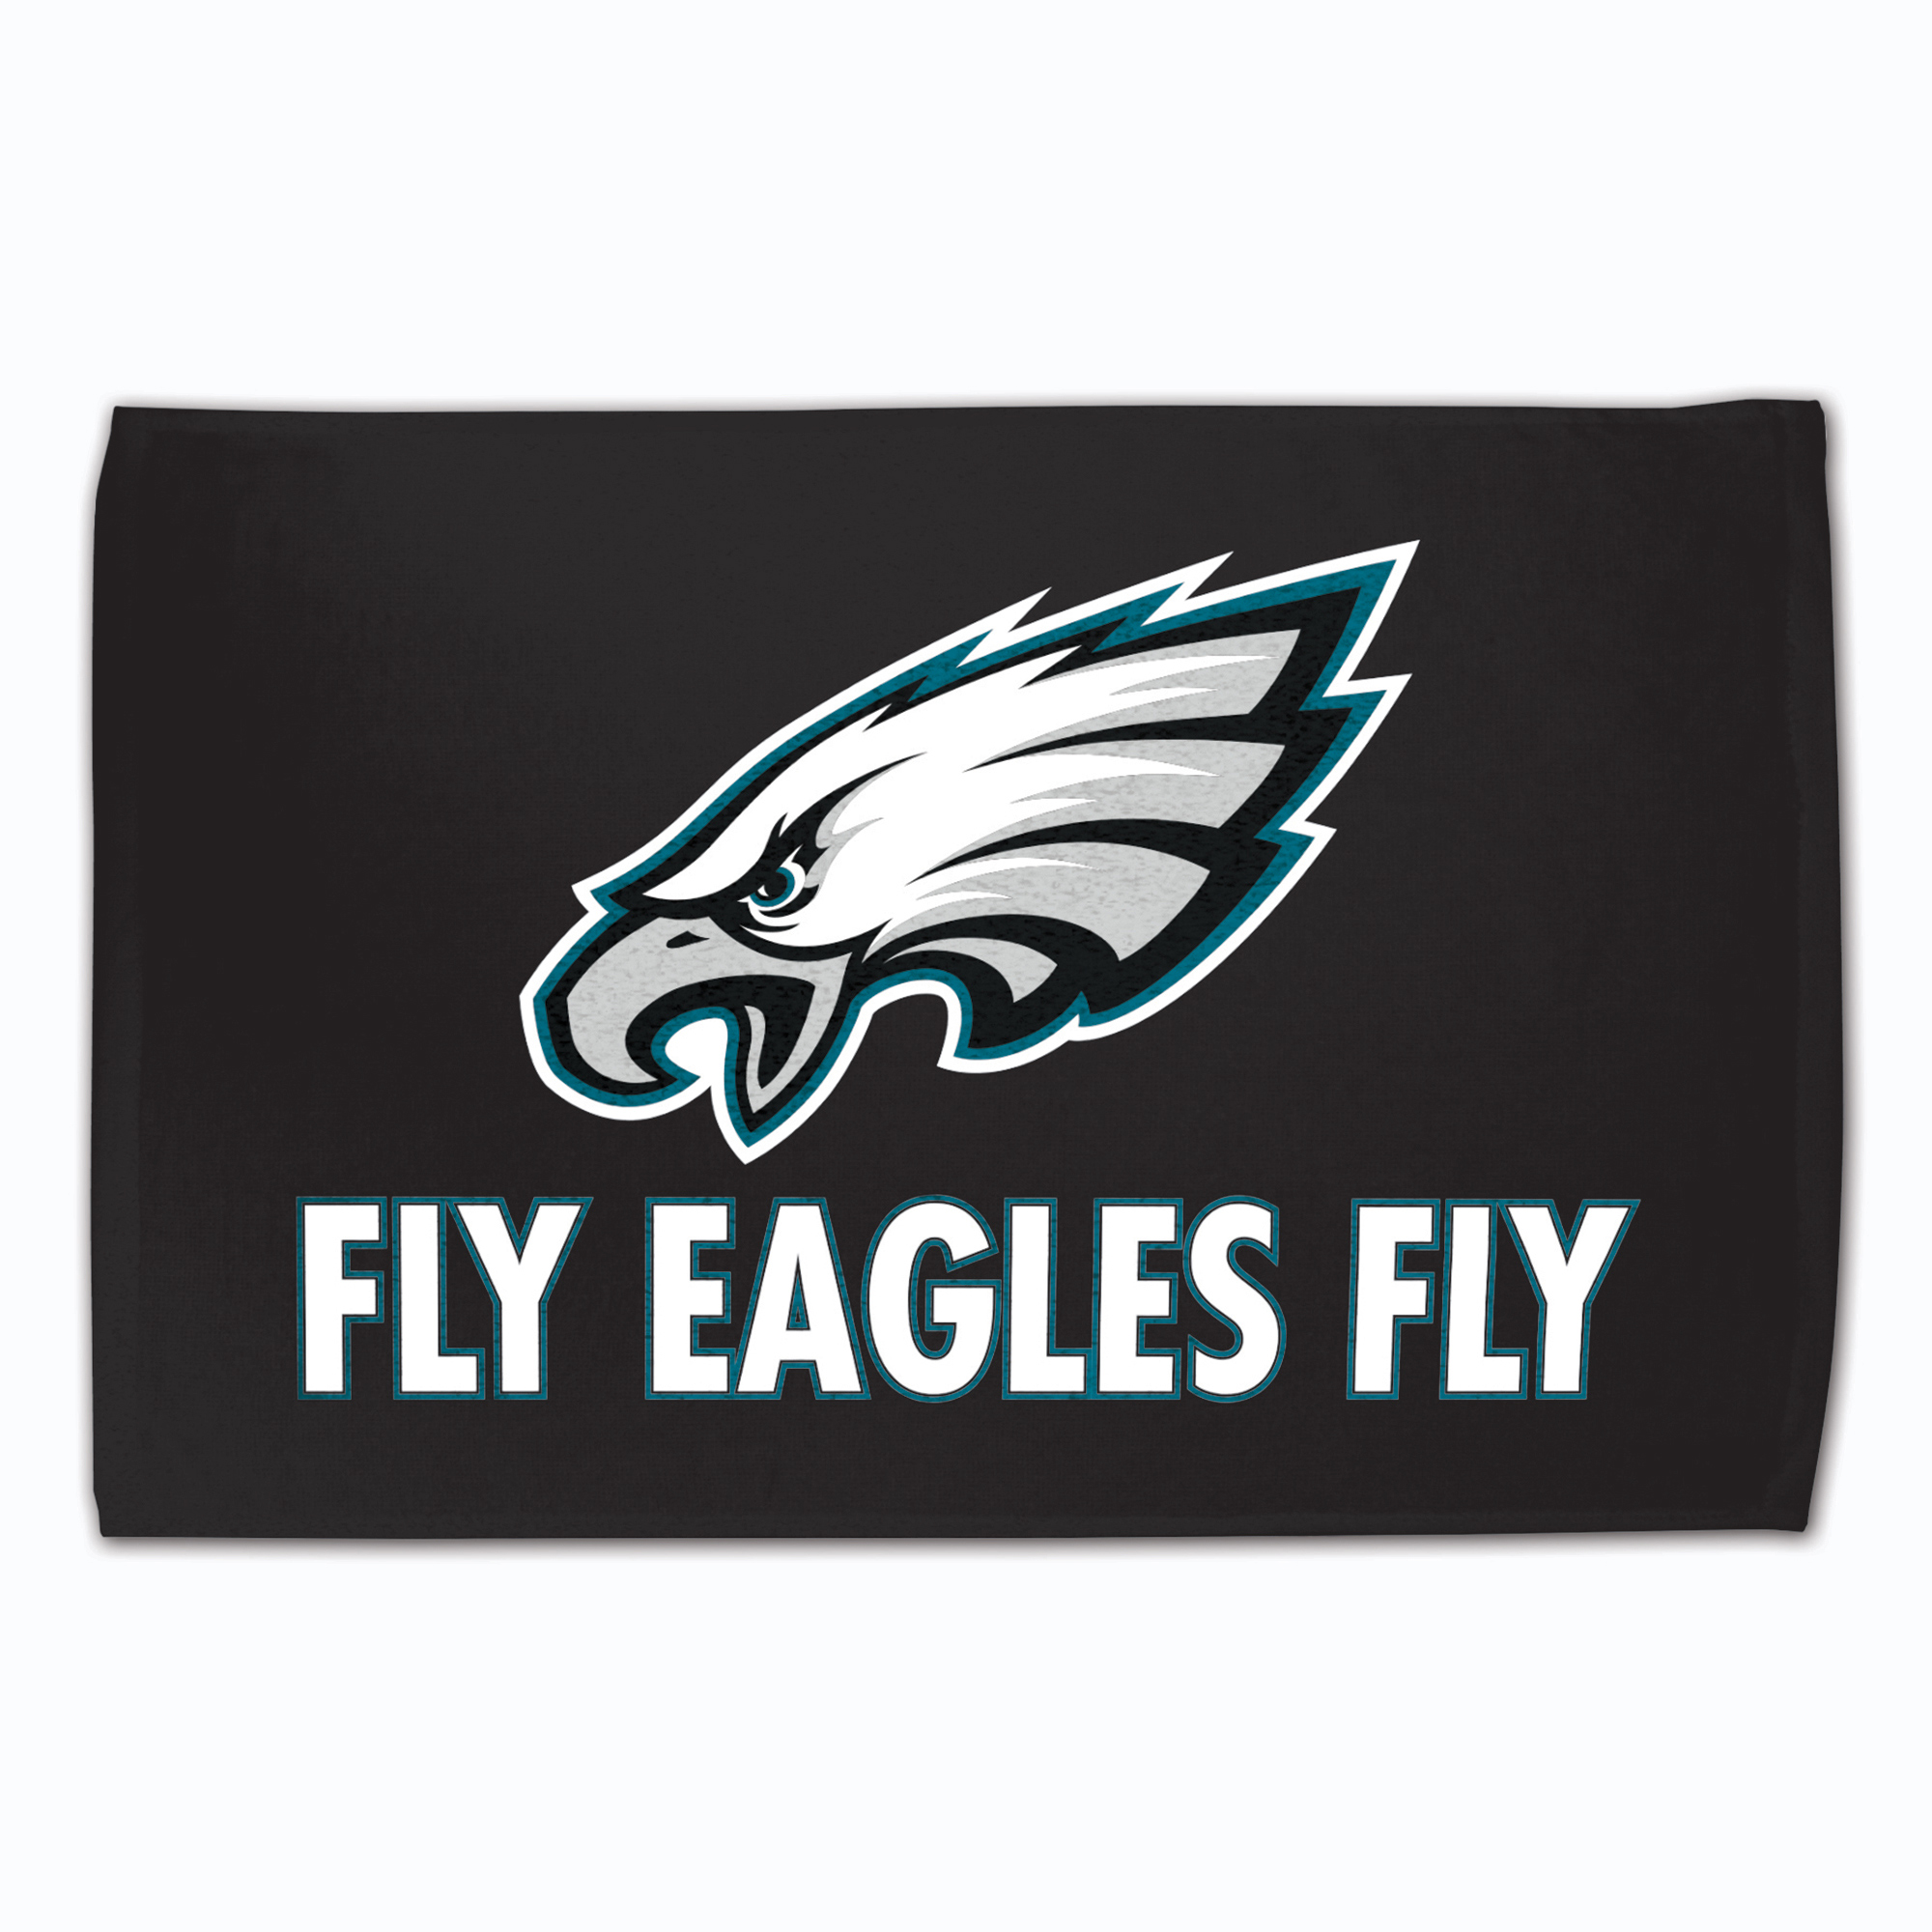 "Philadelphia Eagles WinCraft Super Bowl LII Champions 25"" x 16"" Fly Towel - No Size"